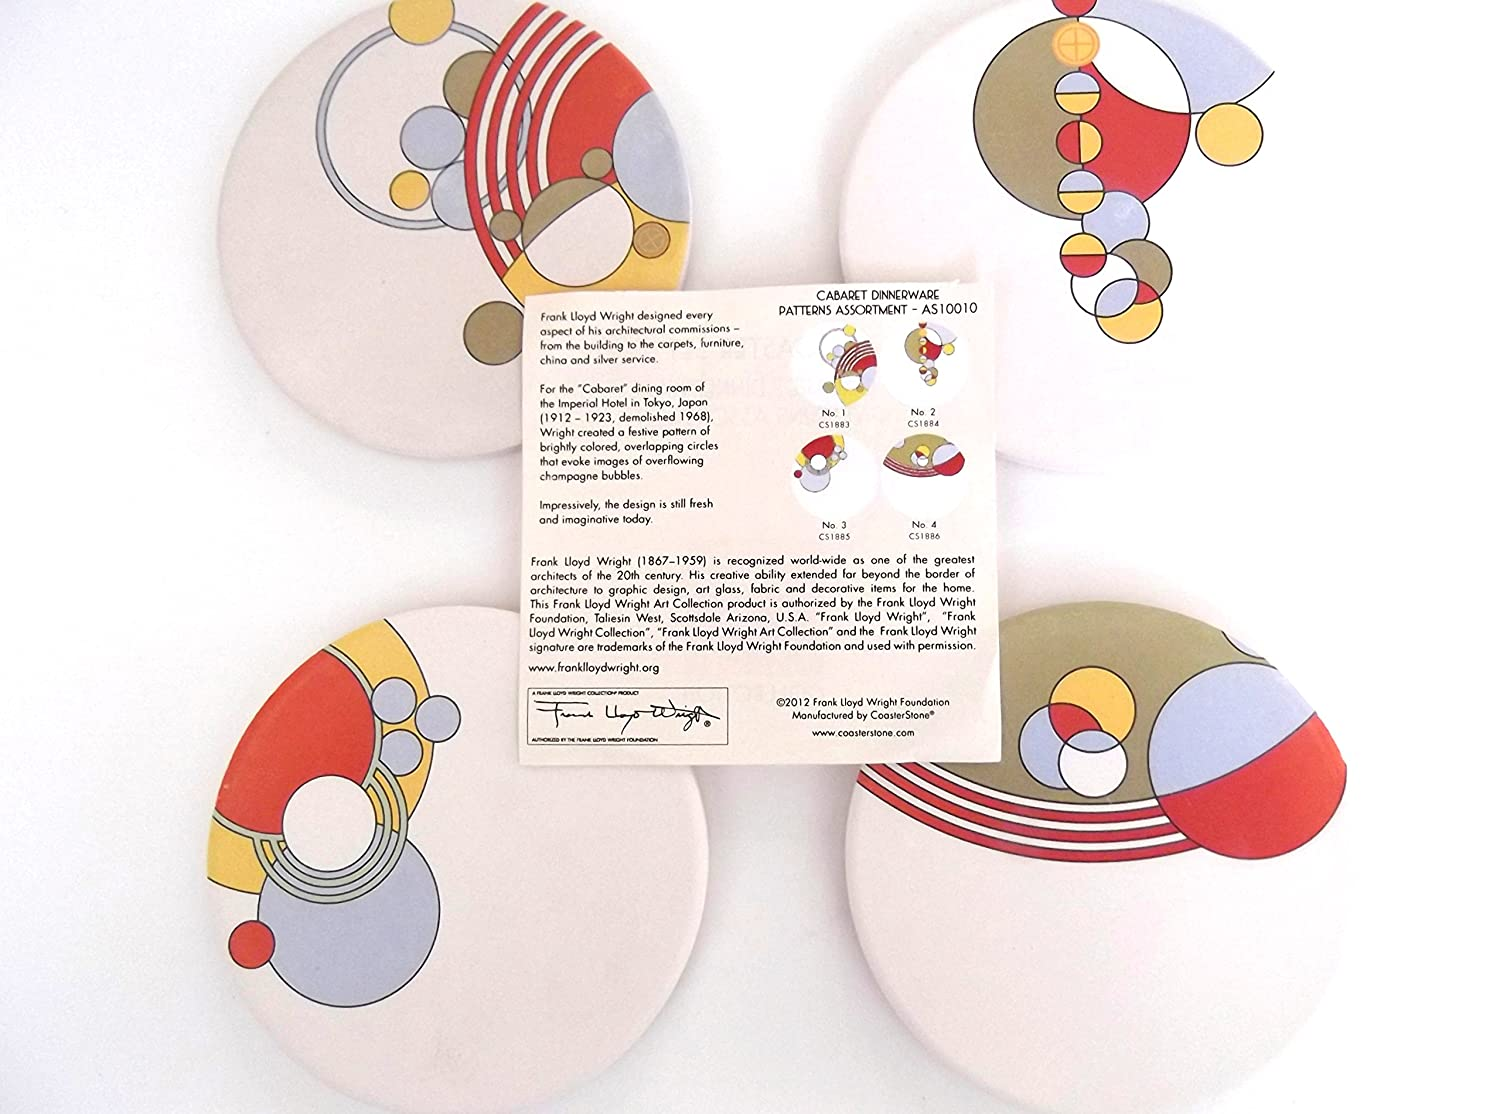 Amazon.com  Frank Lloyd Wright CABARET DINNERWARE PATTERN Set of 4 Absorbent COASTERS  Other Products  Everything Else  sc 1 st  Amazon.com : imperial hotel dinnerware - pezcame.com